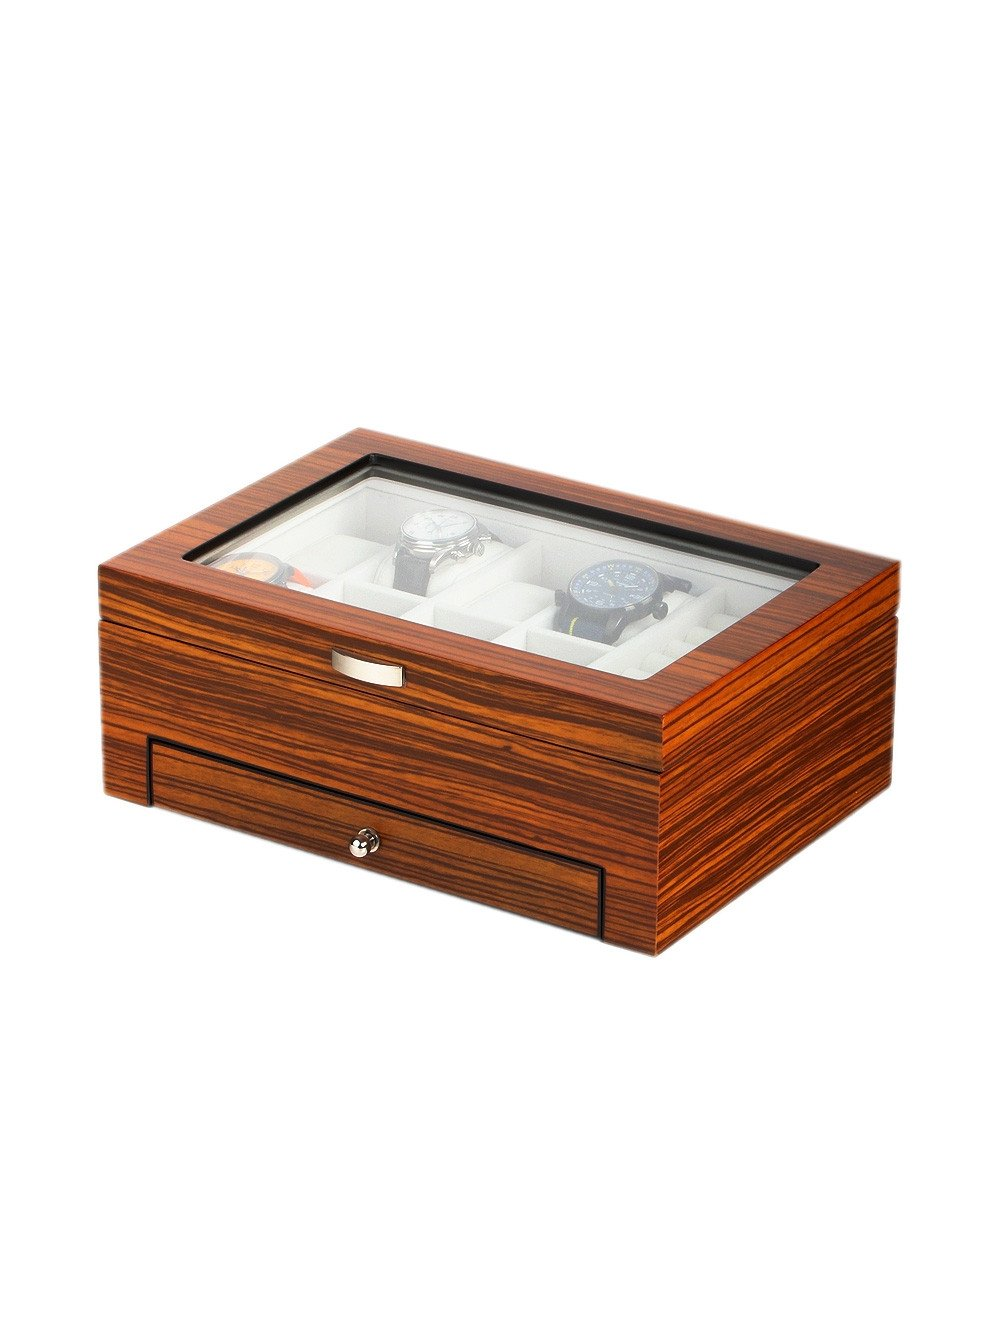 Rothenschild Watches & Jewellery Box RS-2271-8Z for 8 Watches Zebra